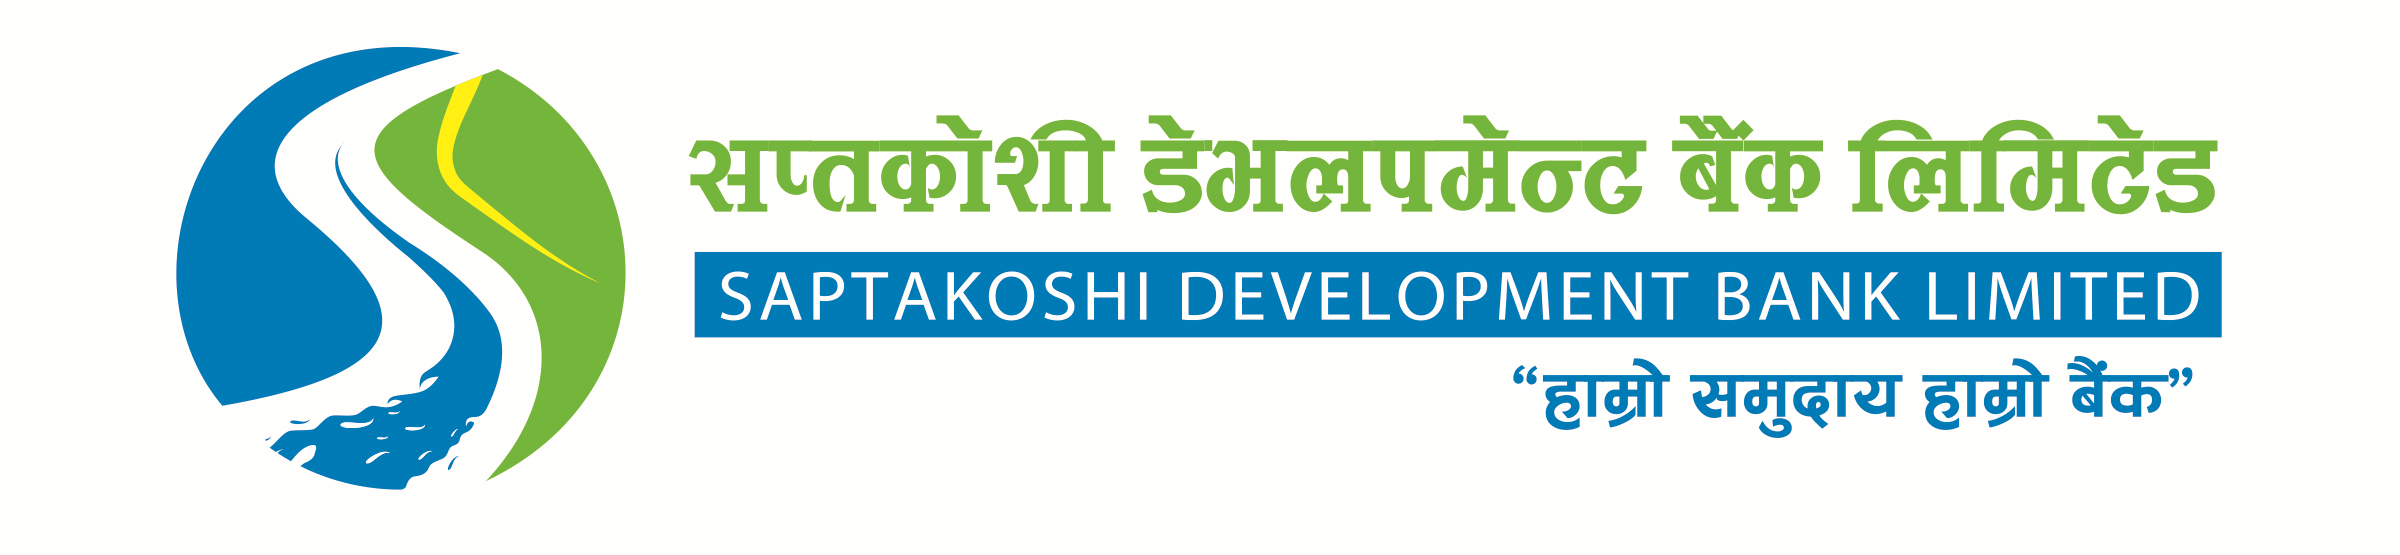 Saptakoshi Development Bank Limited